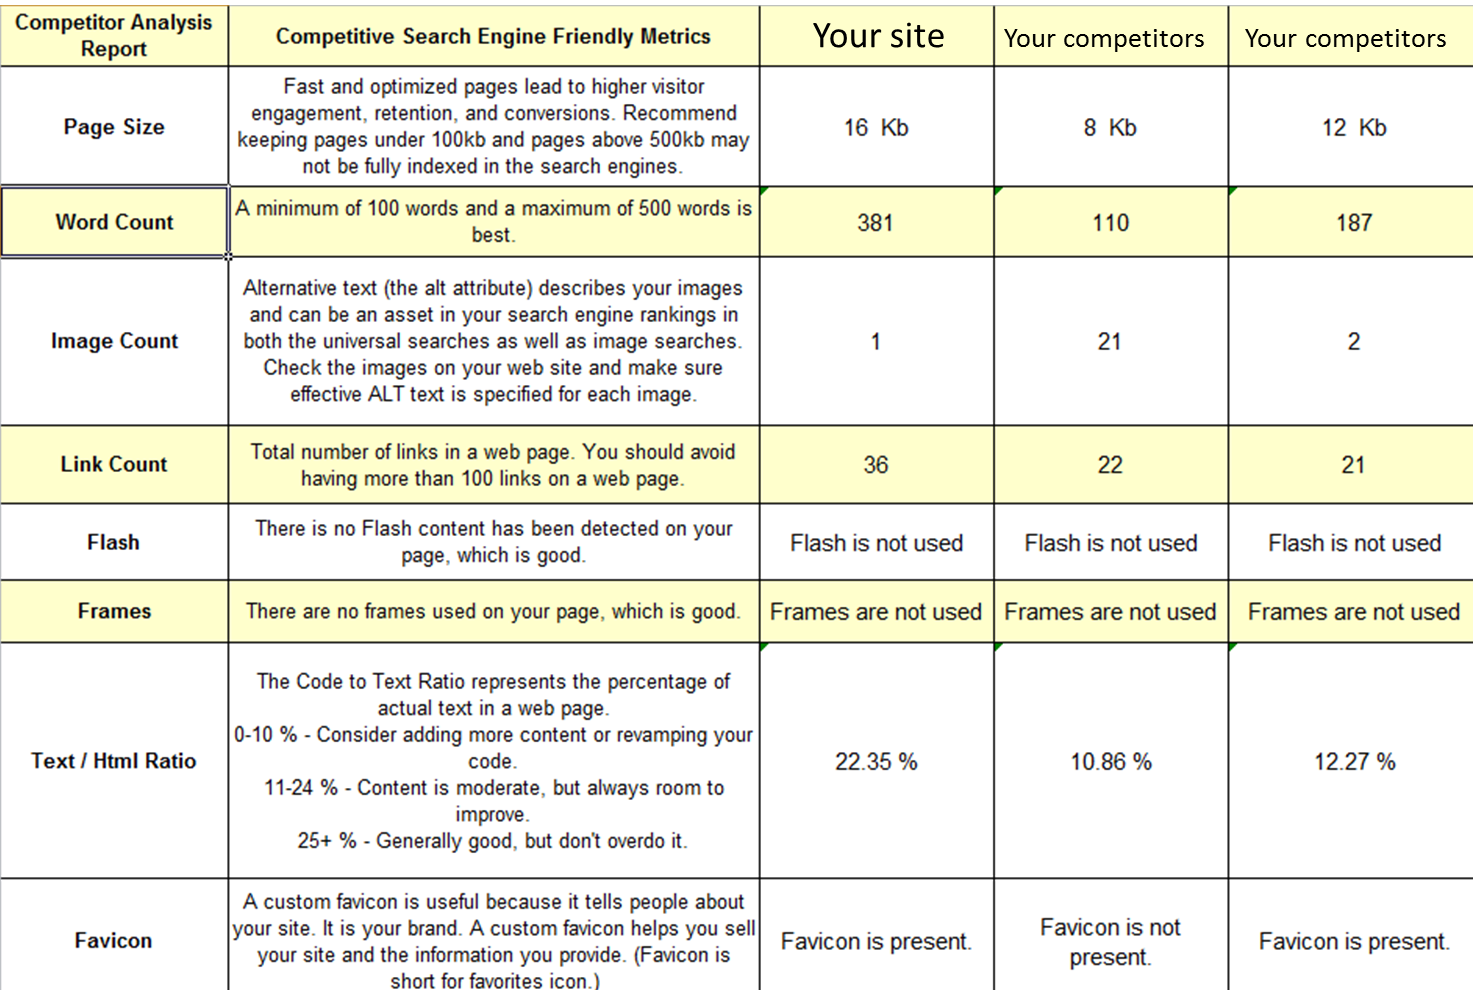 Competitor Analysis Samples